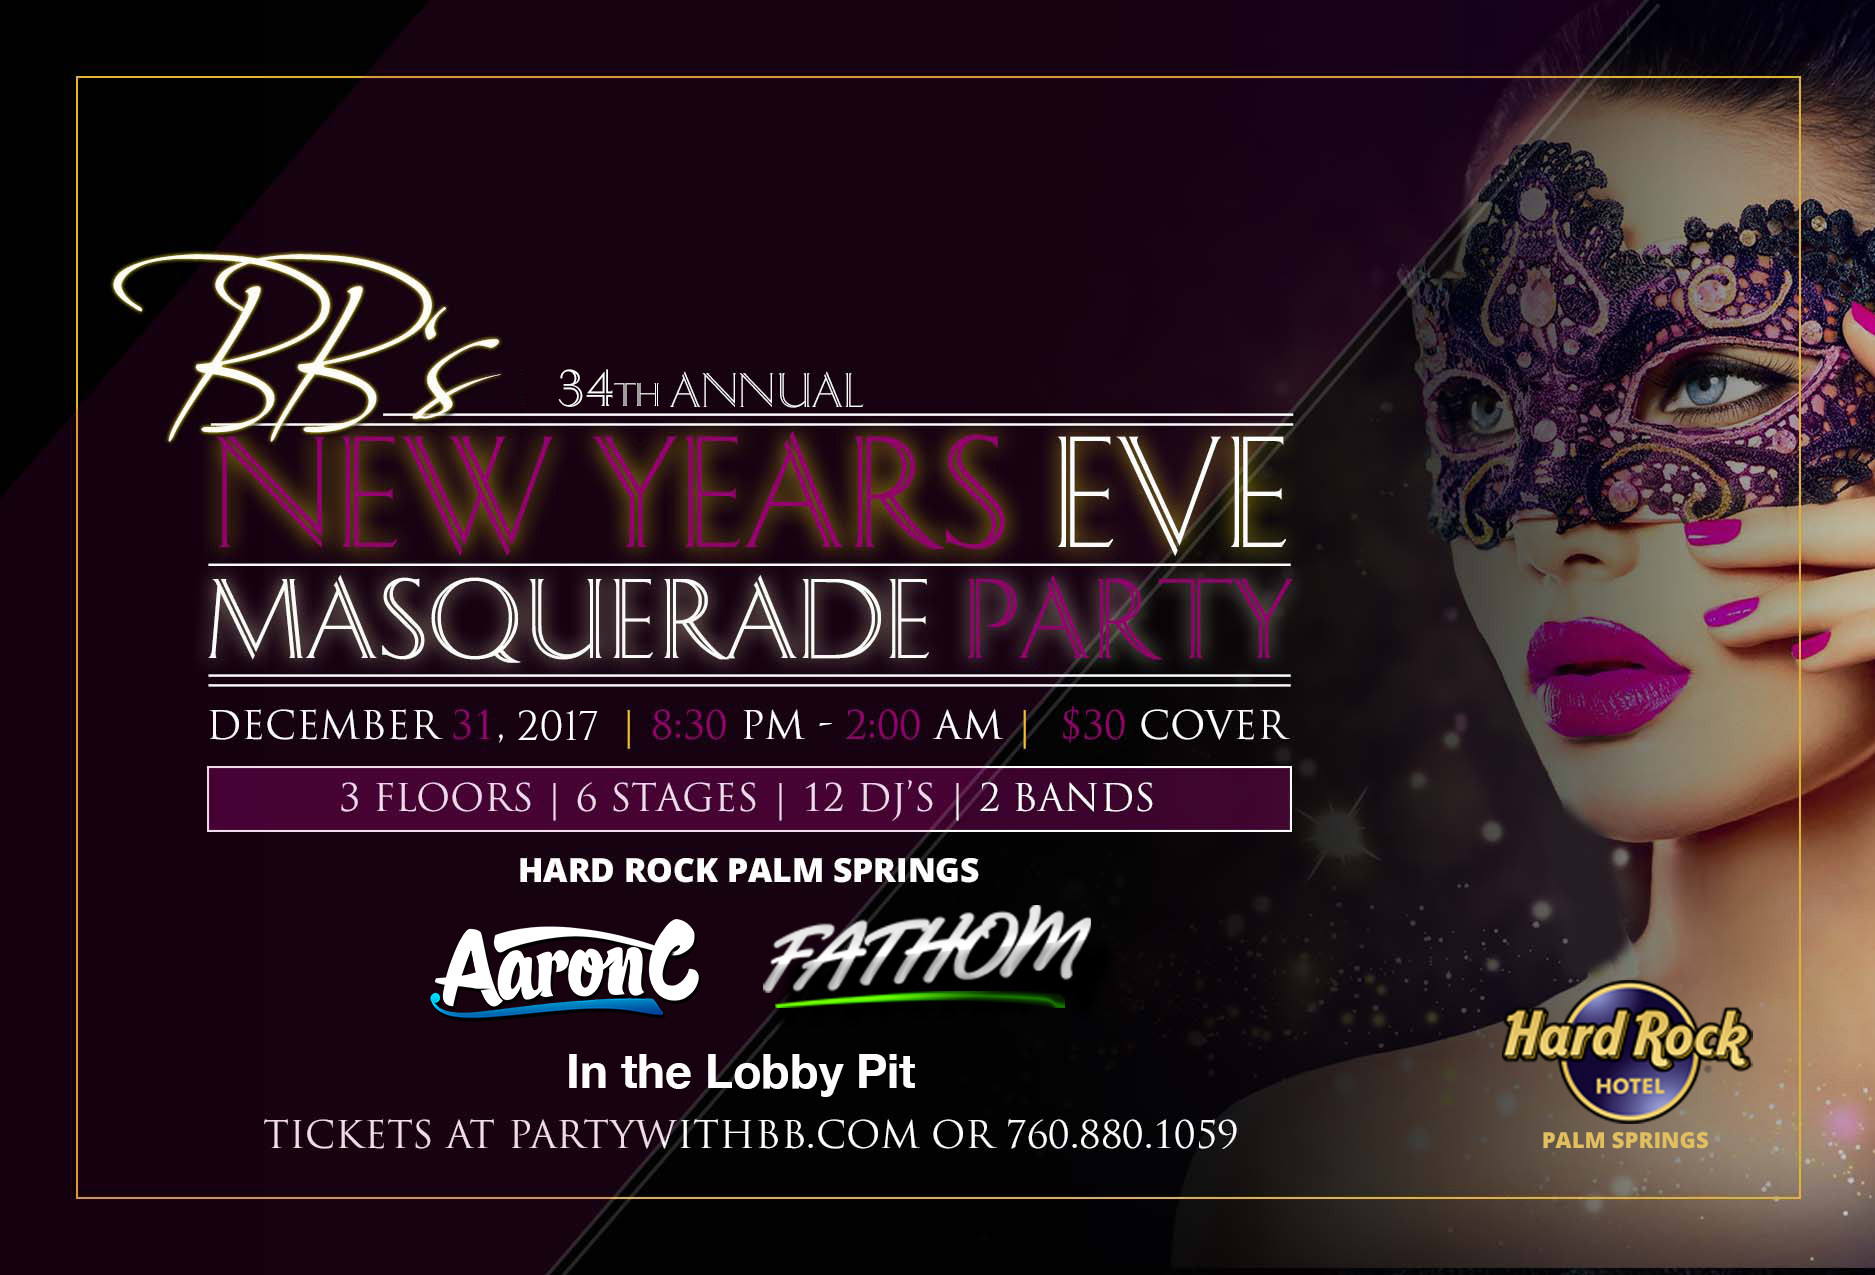 BB's 34th Annual NYE Masquerade Party with Aaron C